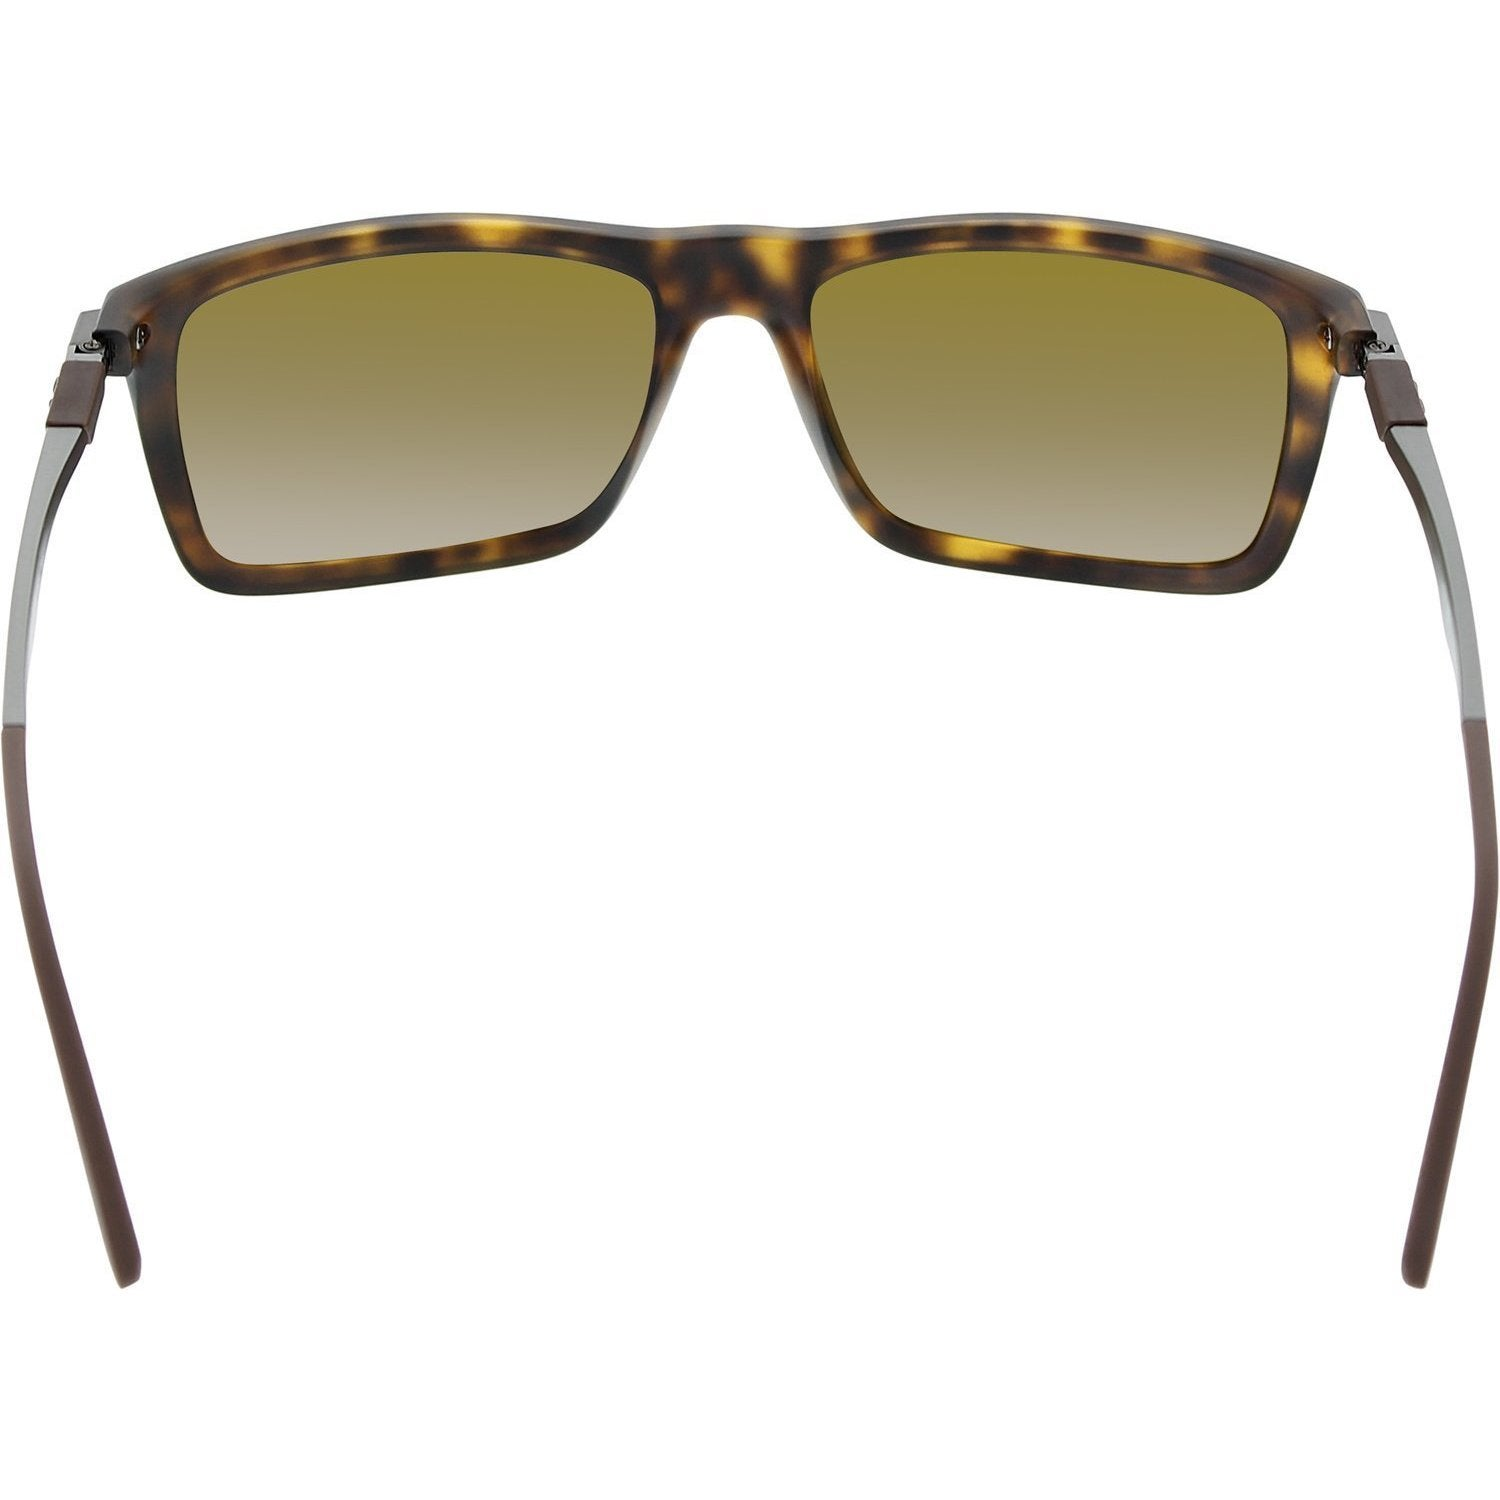 8936b5d9391 Shop Ray-Ban RB4214 609283 Unisex Tortoise Gunmetal Frame Polarized Brown  Classic Lens Sunglasses - Ships To Canada - Overstock.ca - 11707876